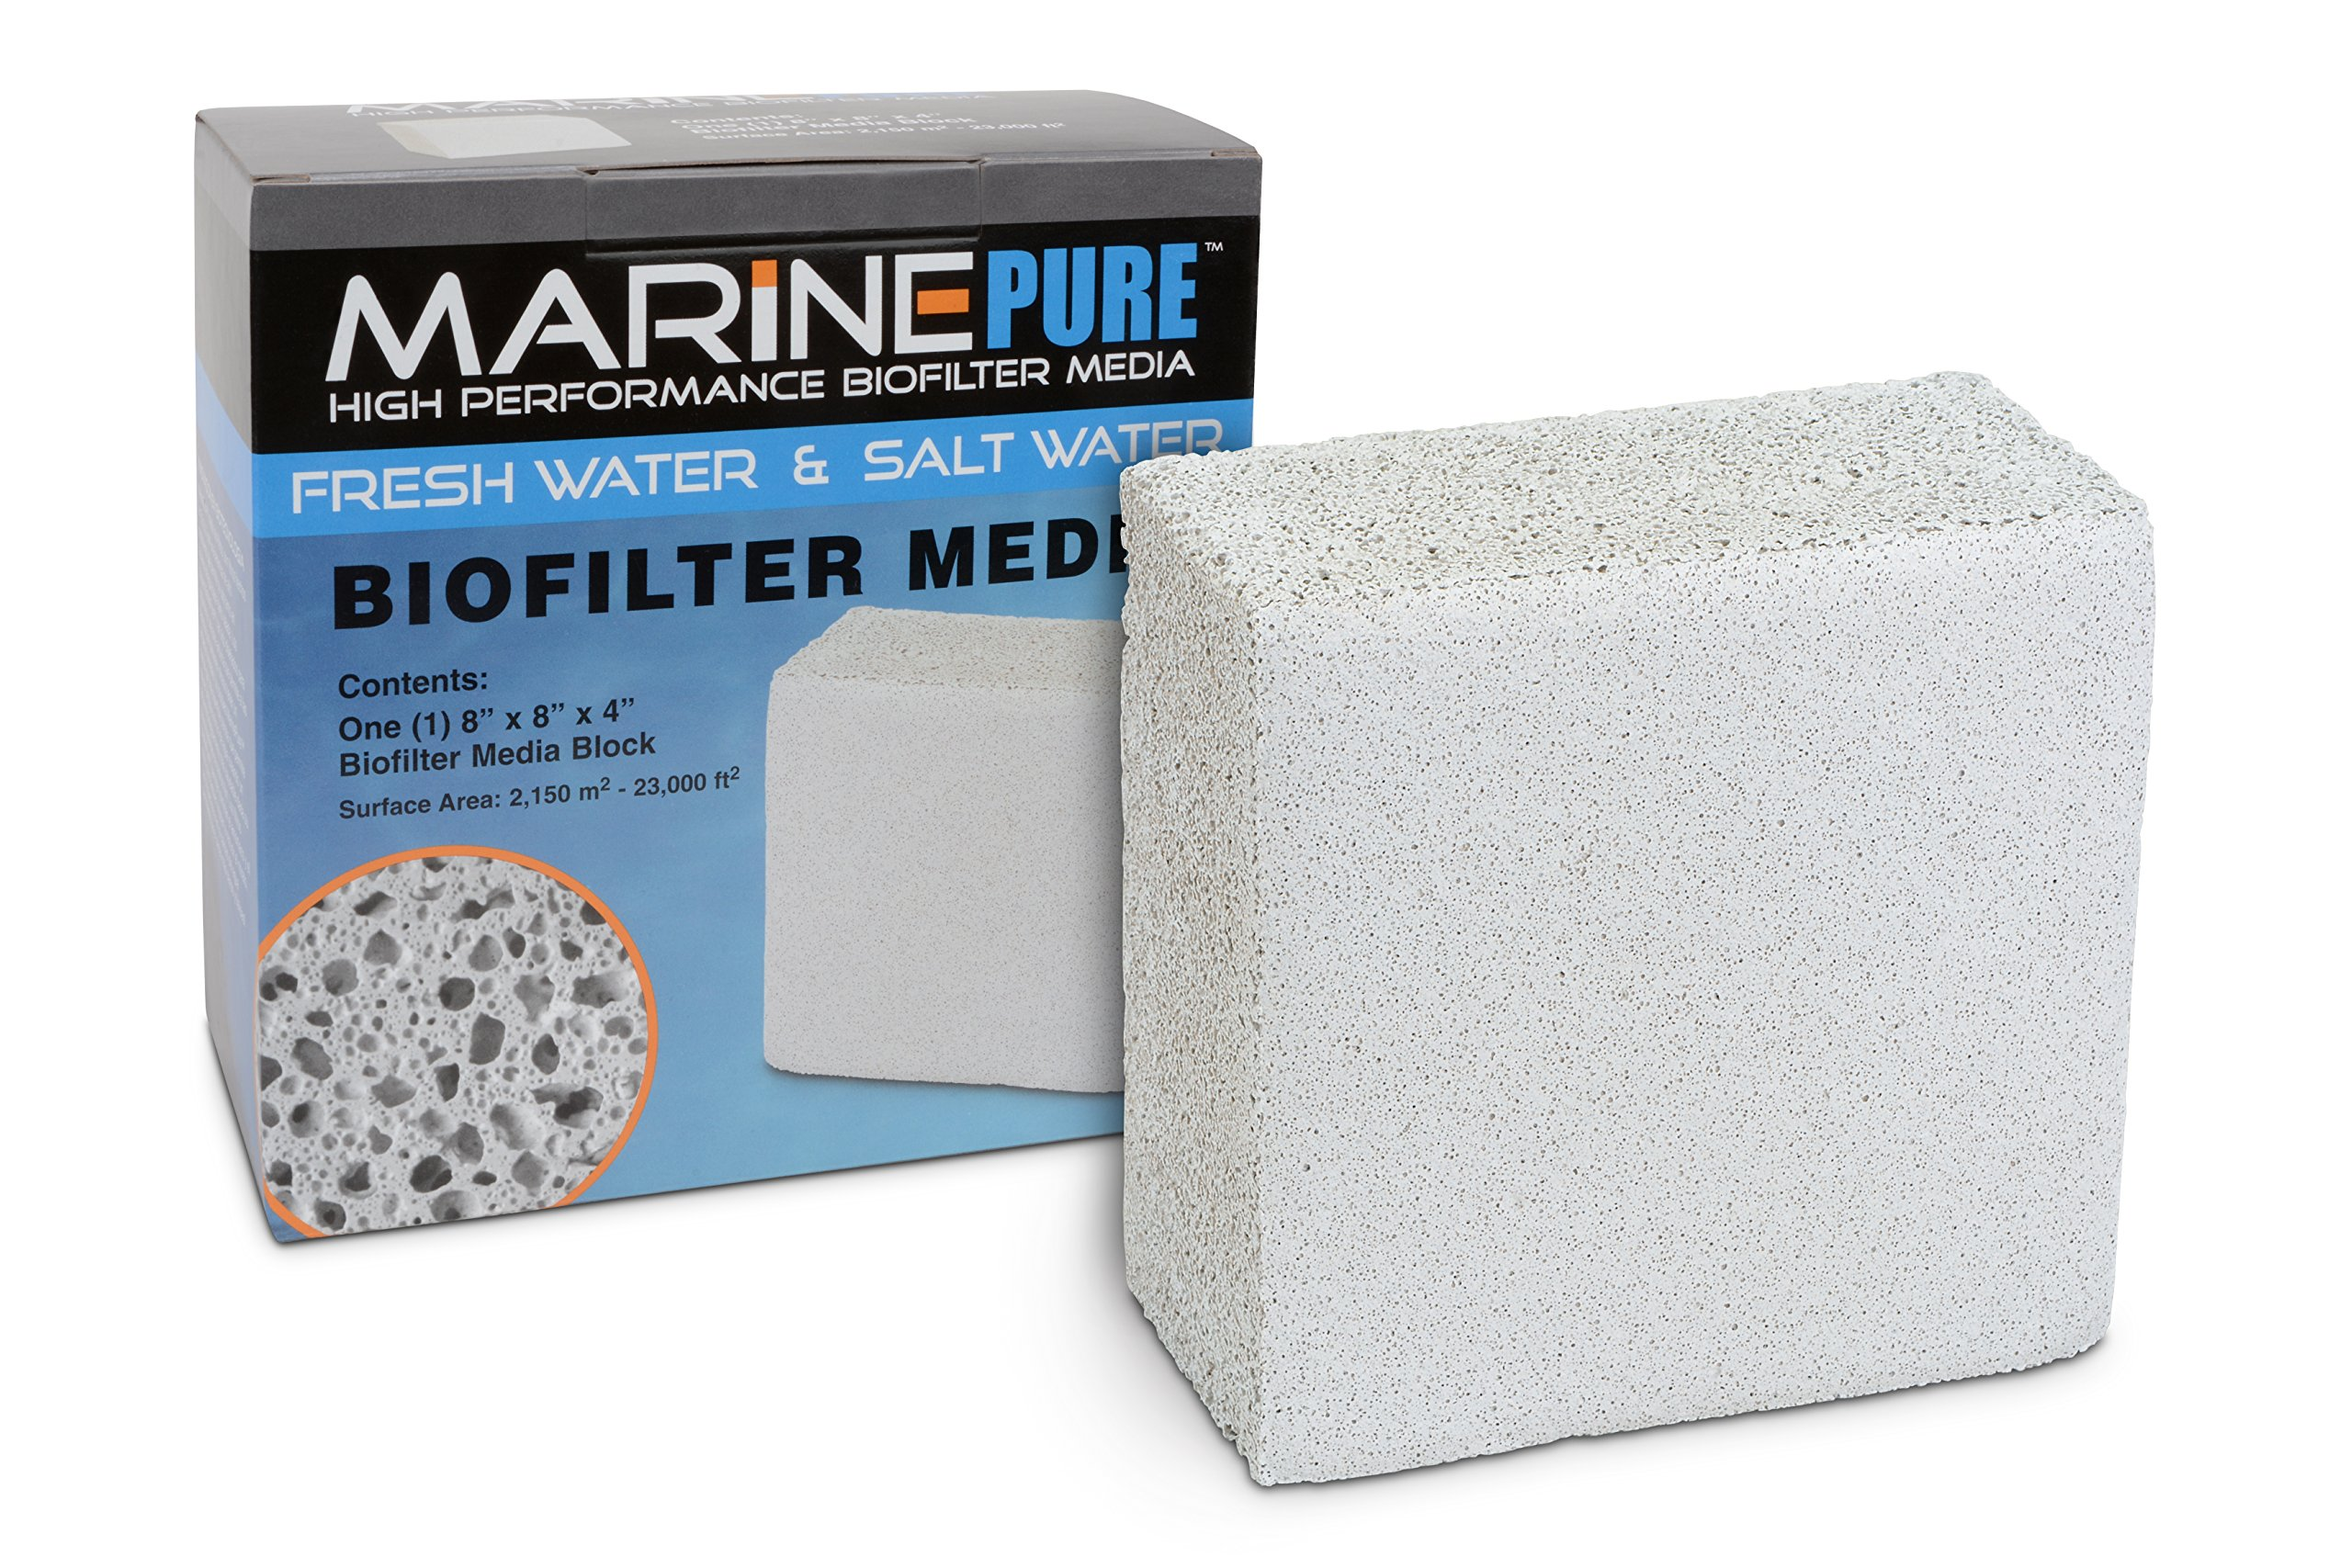 CerMedia MarinePure Block Bio-Filter Media for Marine and Freshwater Aquariums, 8 by 8 by 4-Inch by CerMedia MarinePure